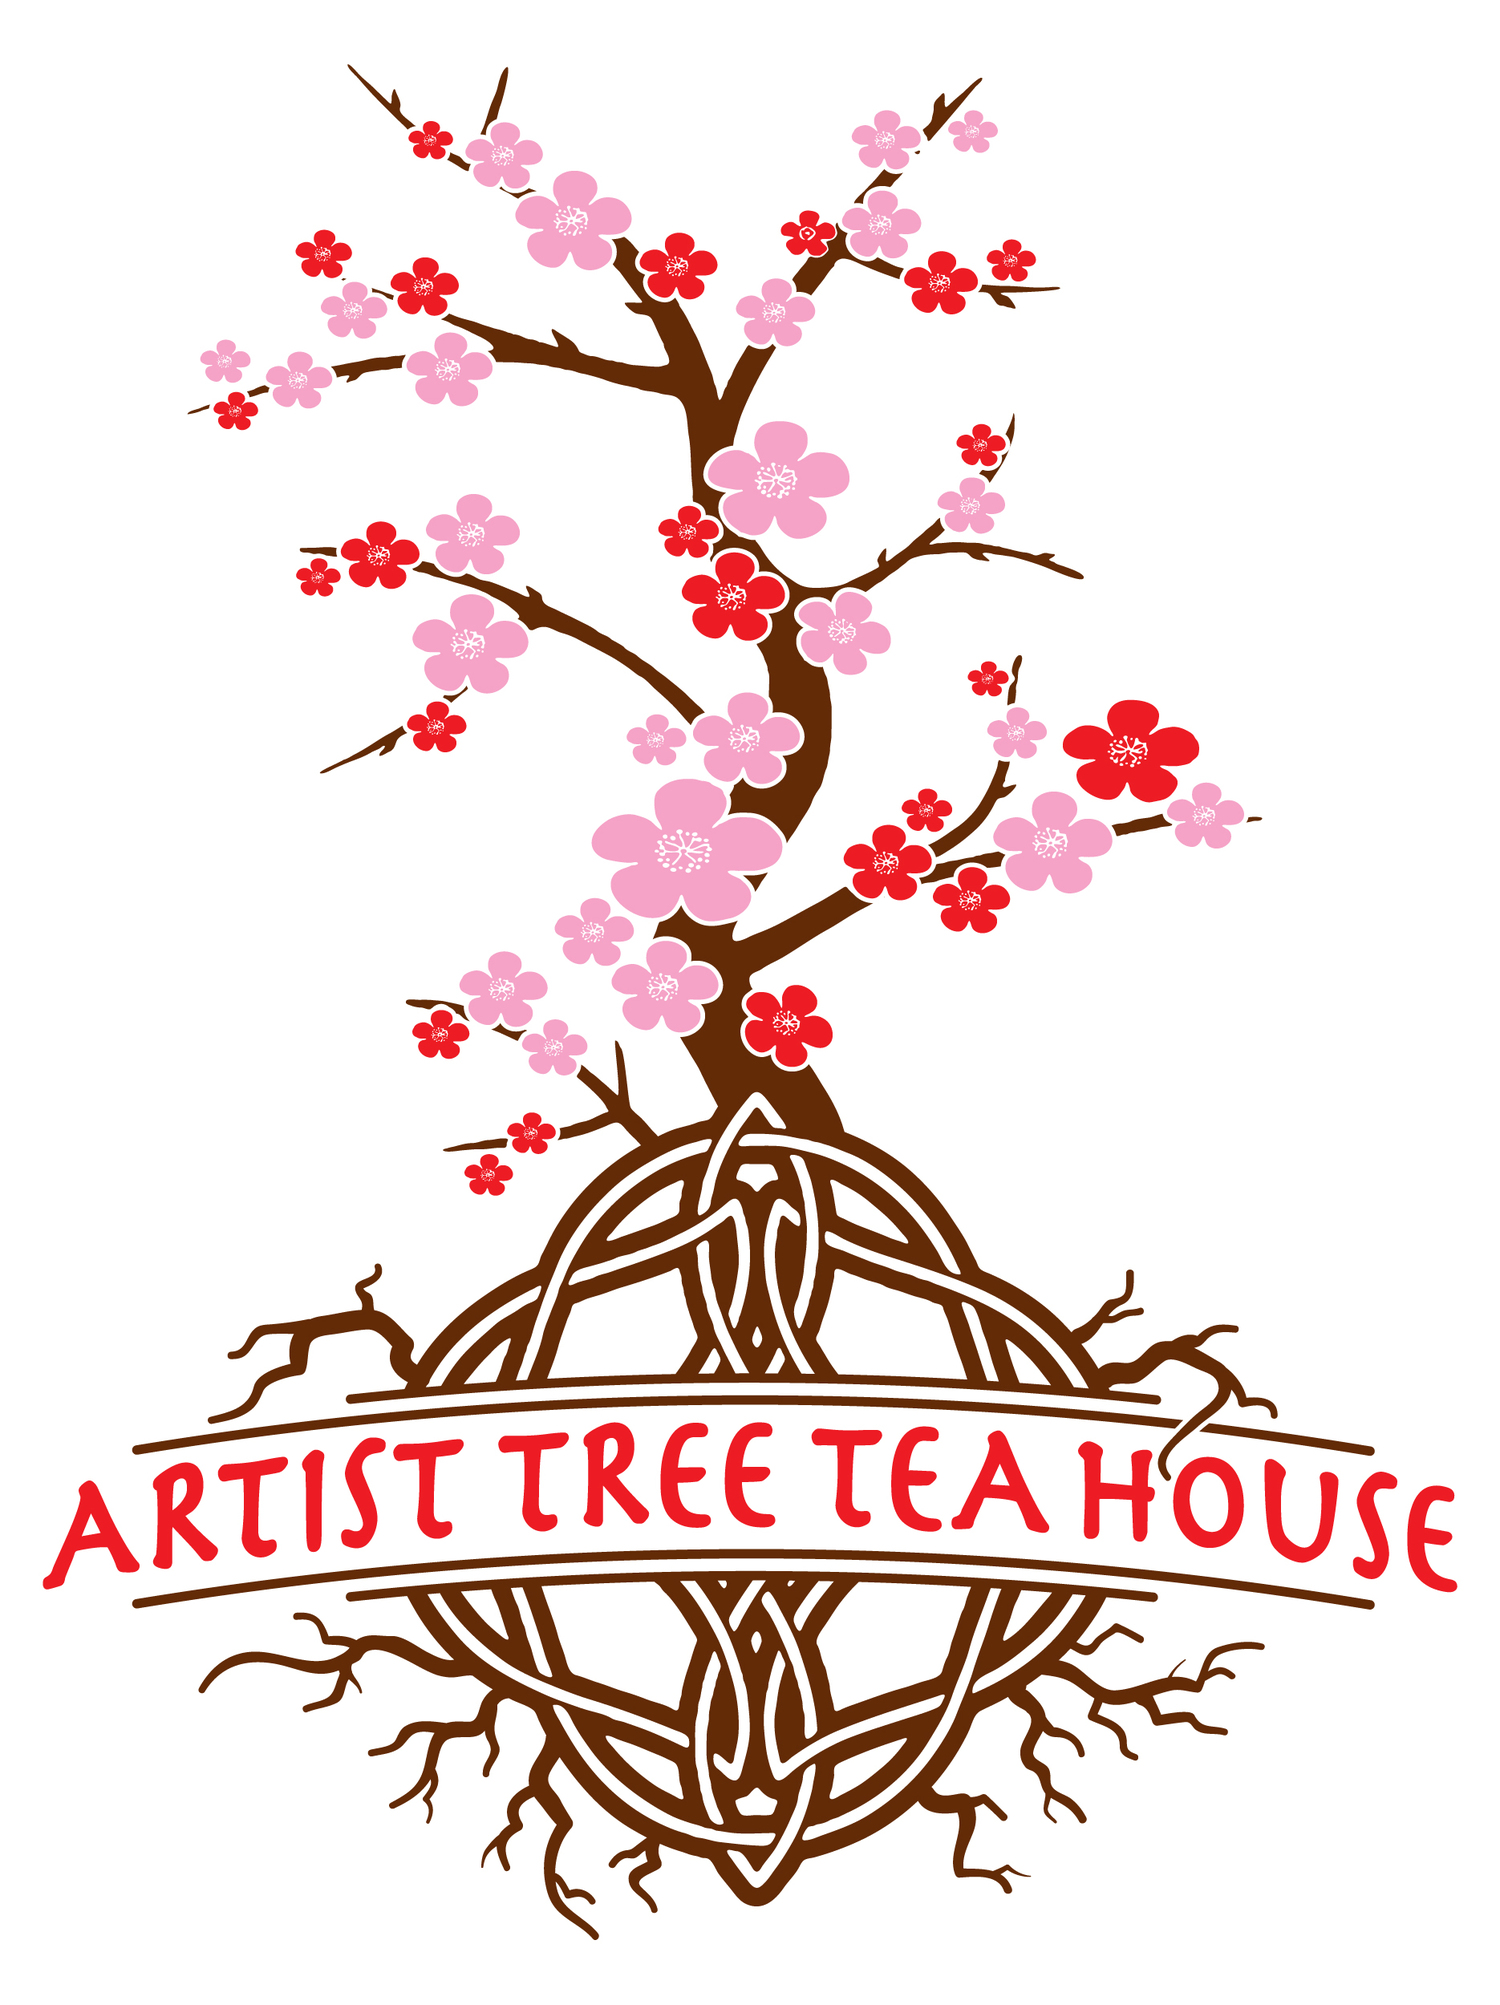 ARTIST TREE TEA HOUSE